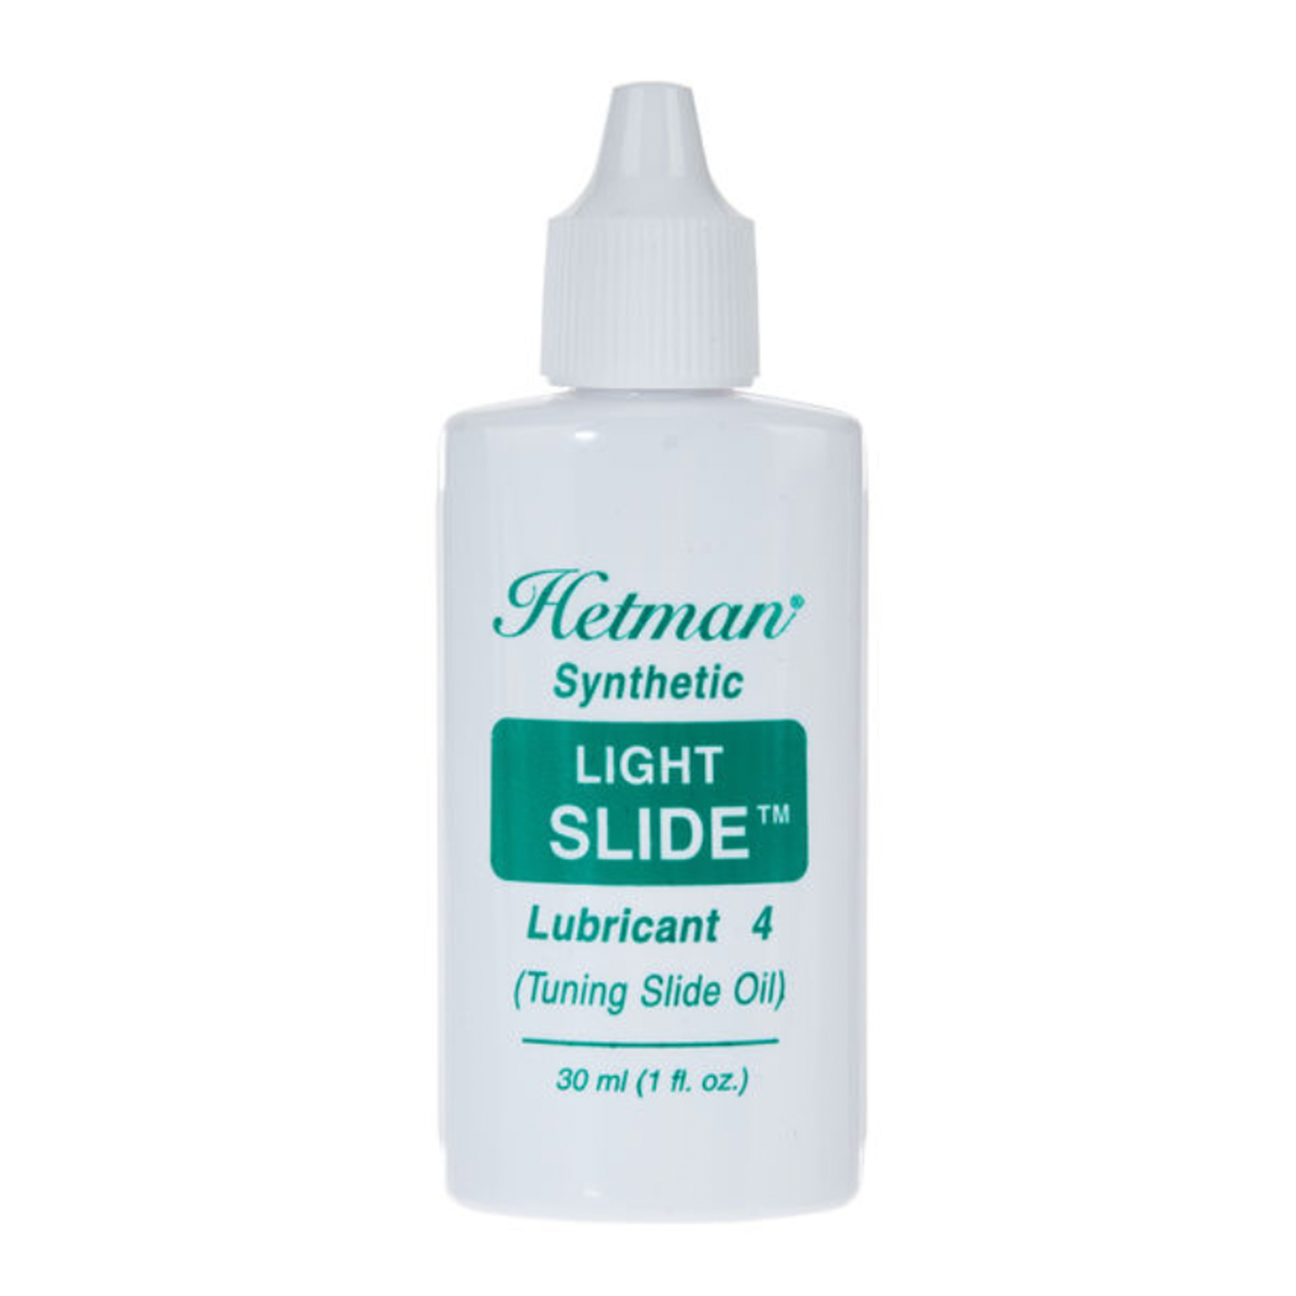 Hetman - #4 Light Slide Lubricant (Tuning Slide Oil)-Accessories-Hetman-Music Elements